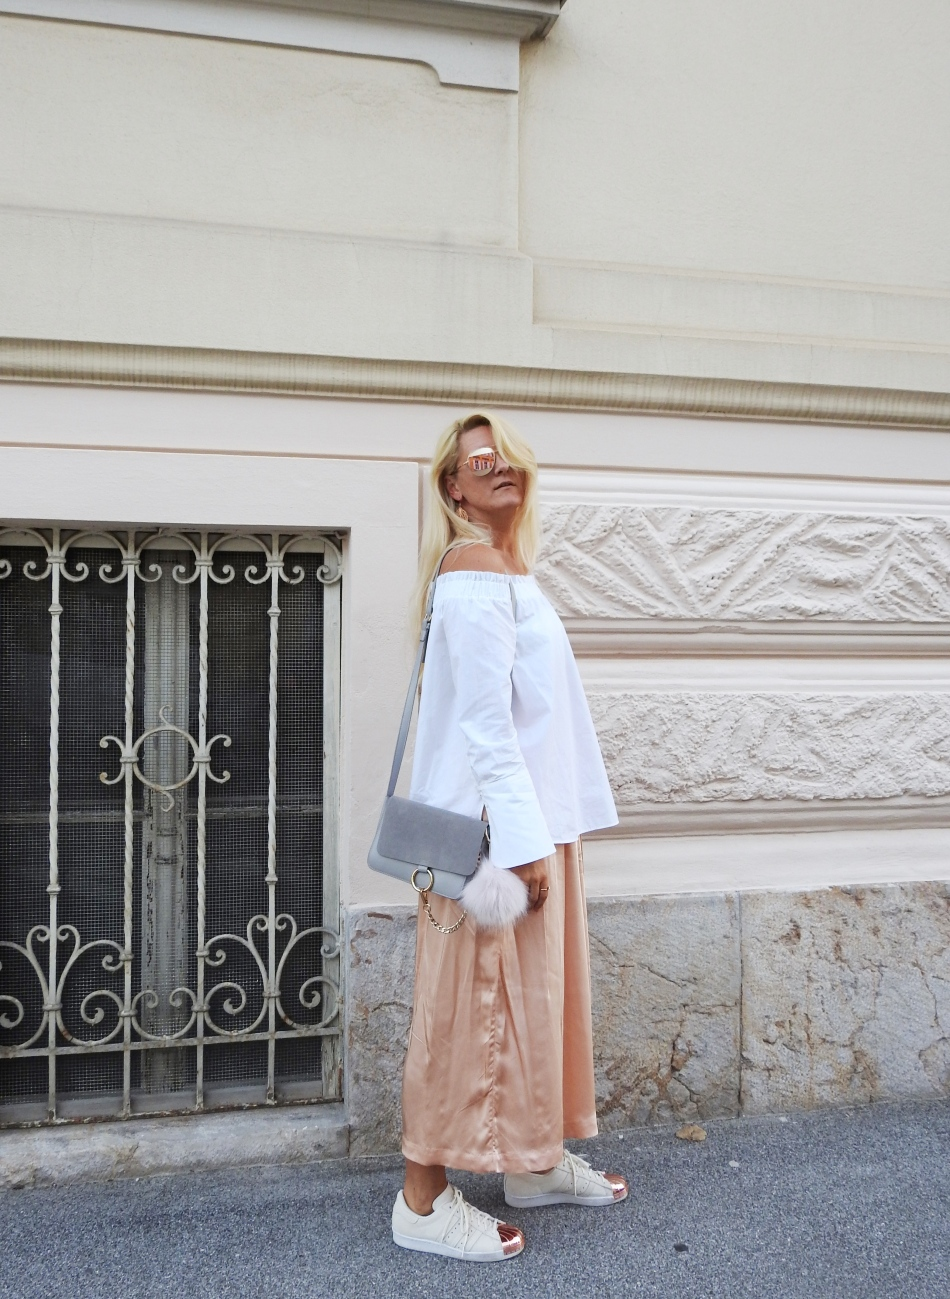 Culotte-Off-Shoulder-Blouse-Adidas-Metaltoe-Chloe-Bag-Dior-Sunglasses-Metallic-carrieslifestyle-Tamara-Prutsch